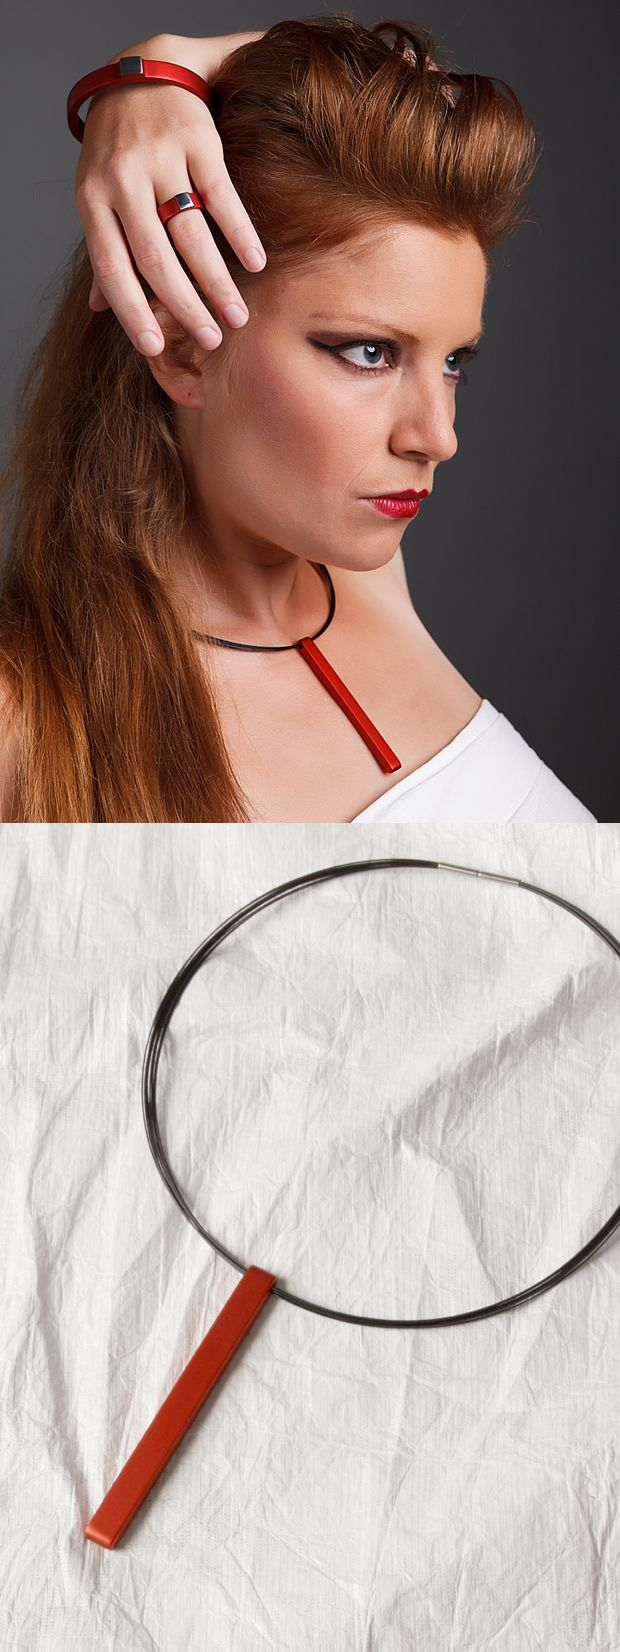 LOVE SIMPLICITY collection. Tomas Holub - minimalist jewelry made of anodized and polished aluminum. Enjoy your own piece of aluminum!